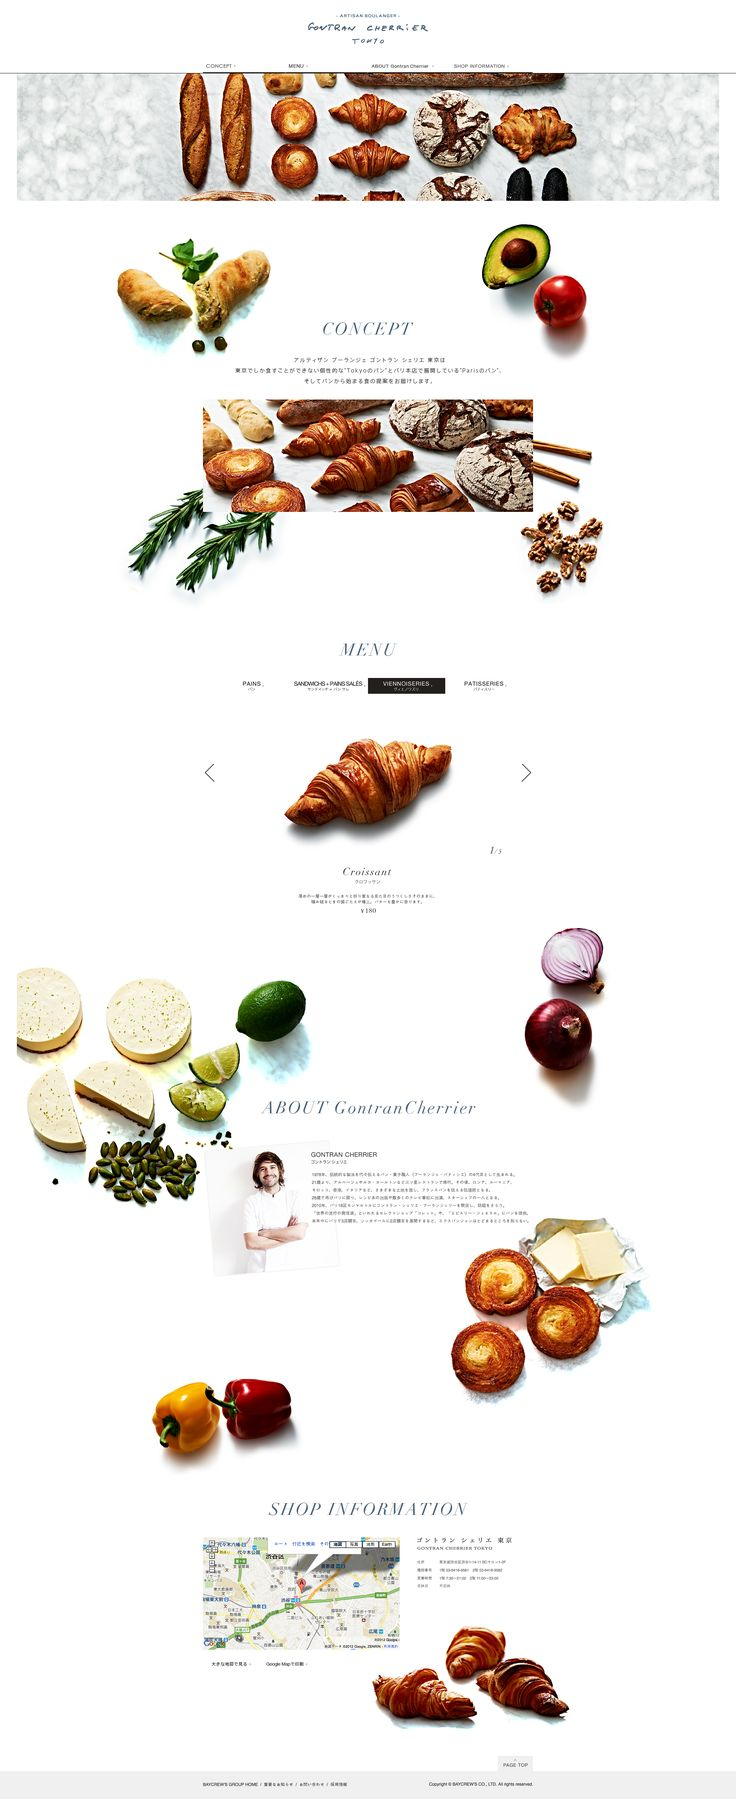 http://gontran-cherrier.jp/#shop #webdesign #website #inspiration